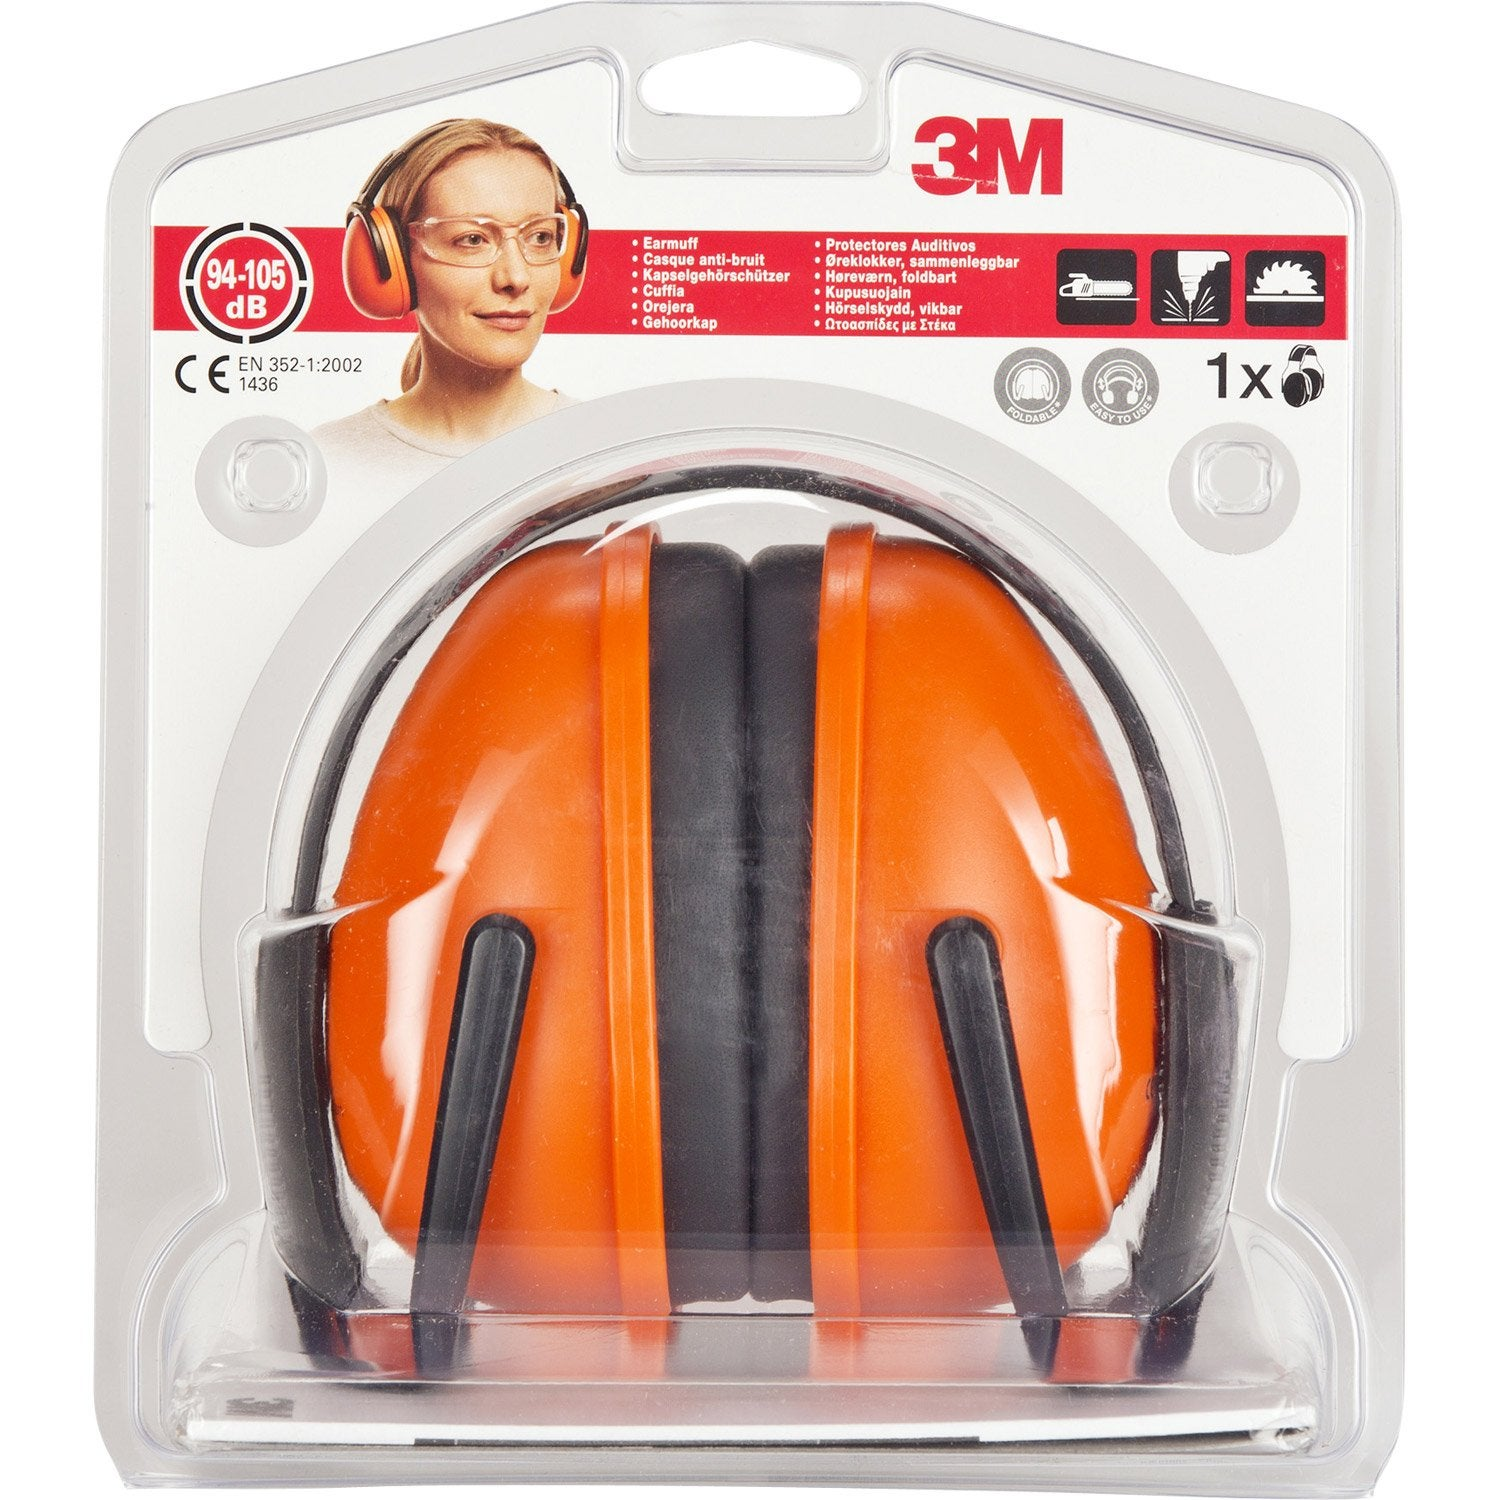 Arceau antibruit pliable antibruit 3m casque auditif - Rideaux anti bruit leroy merlin ...